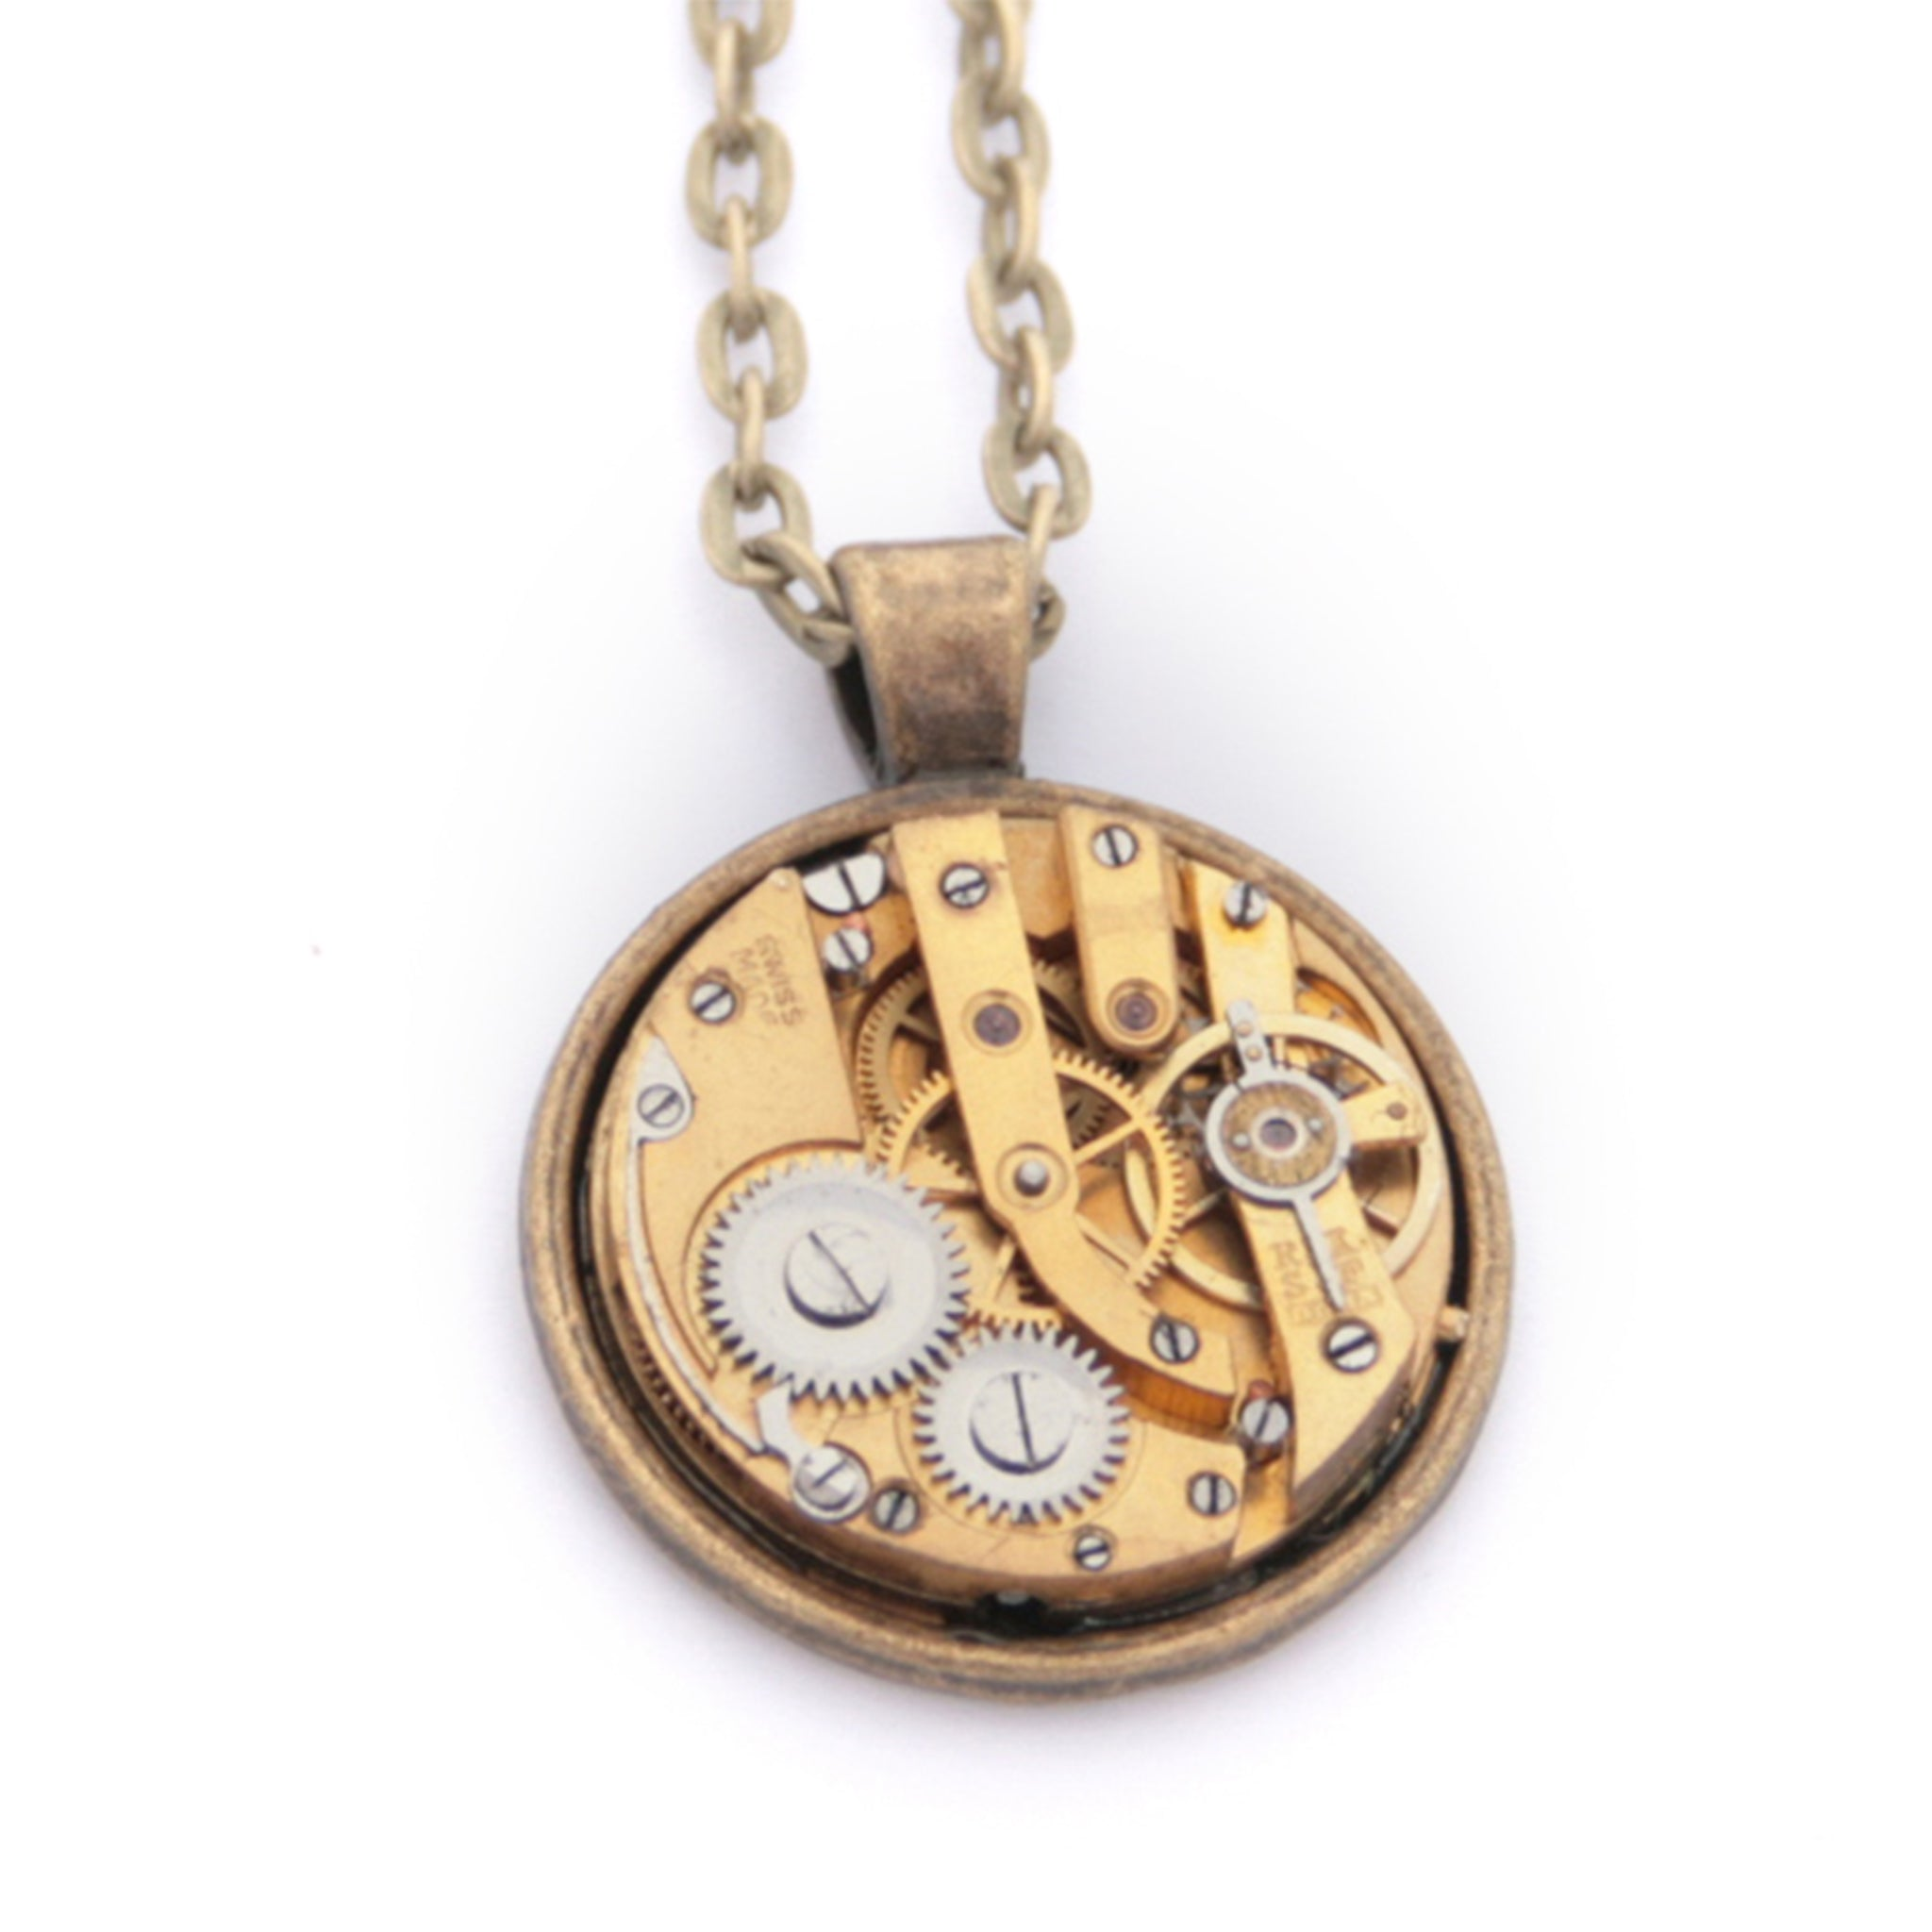 Steampunk Necklace in Gold Tone with gold watch movement